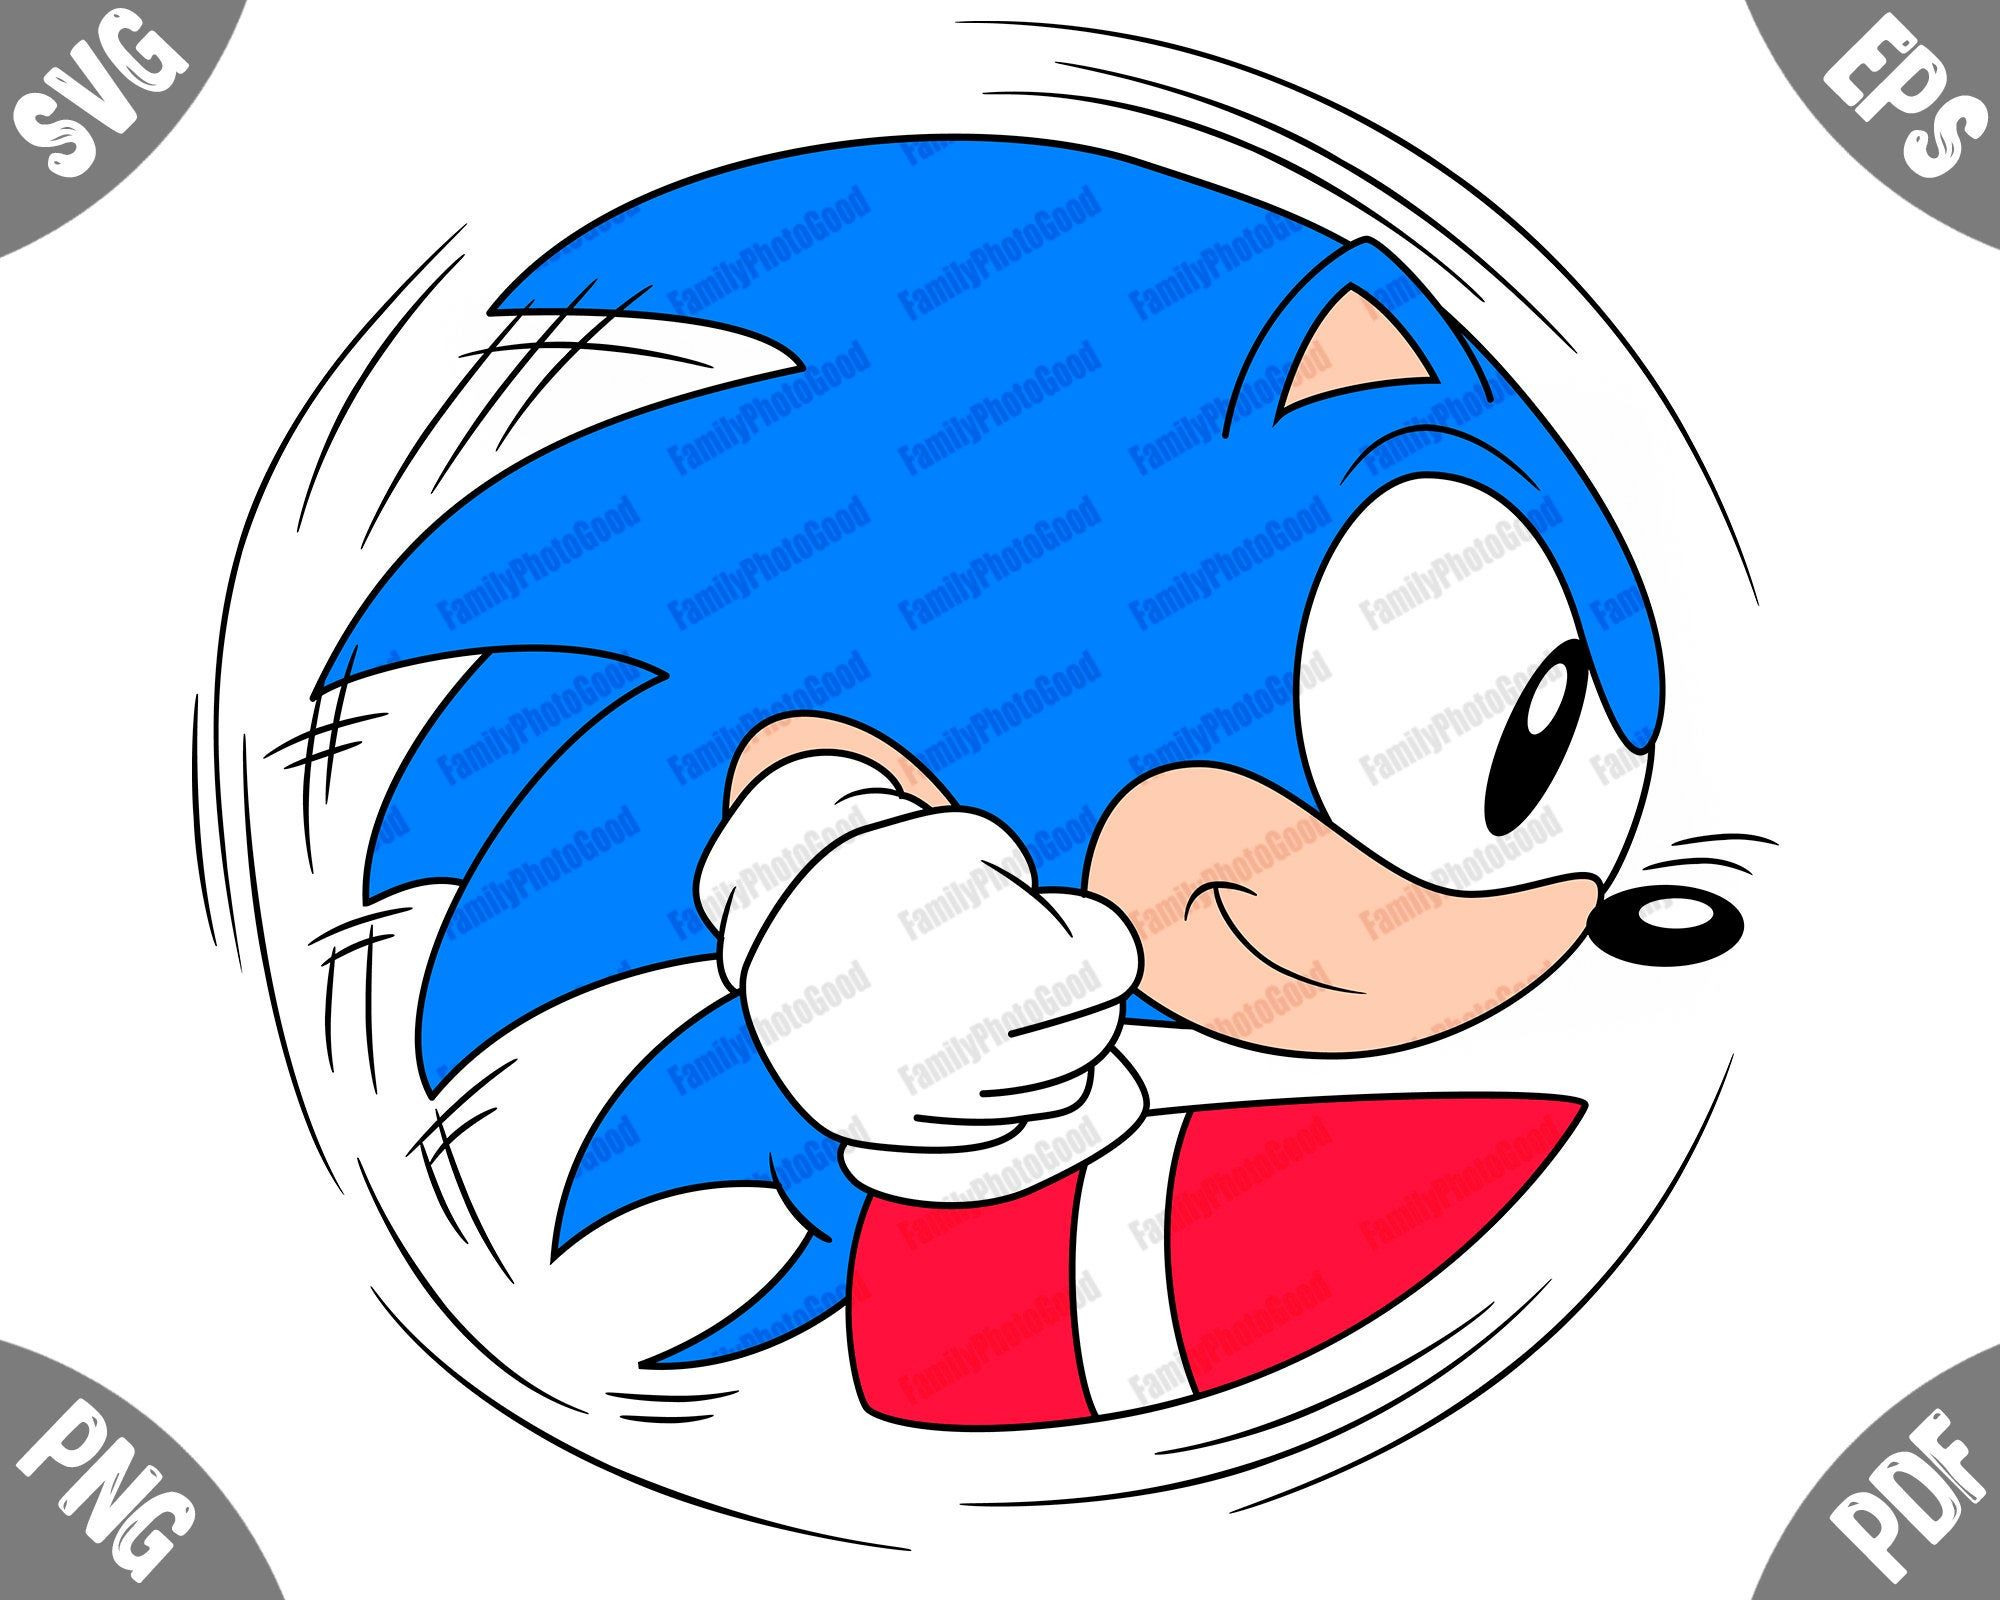 Sonic Svg Sonic Head Svg The Hedgehog Svg Sonic Digital Tails Svg Sonic File Sonic Clipart Sonic Cricut Sonic Decal Hedgehog Svg In 2020 Sonic Classic Sonic Sonic Birthday